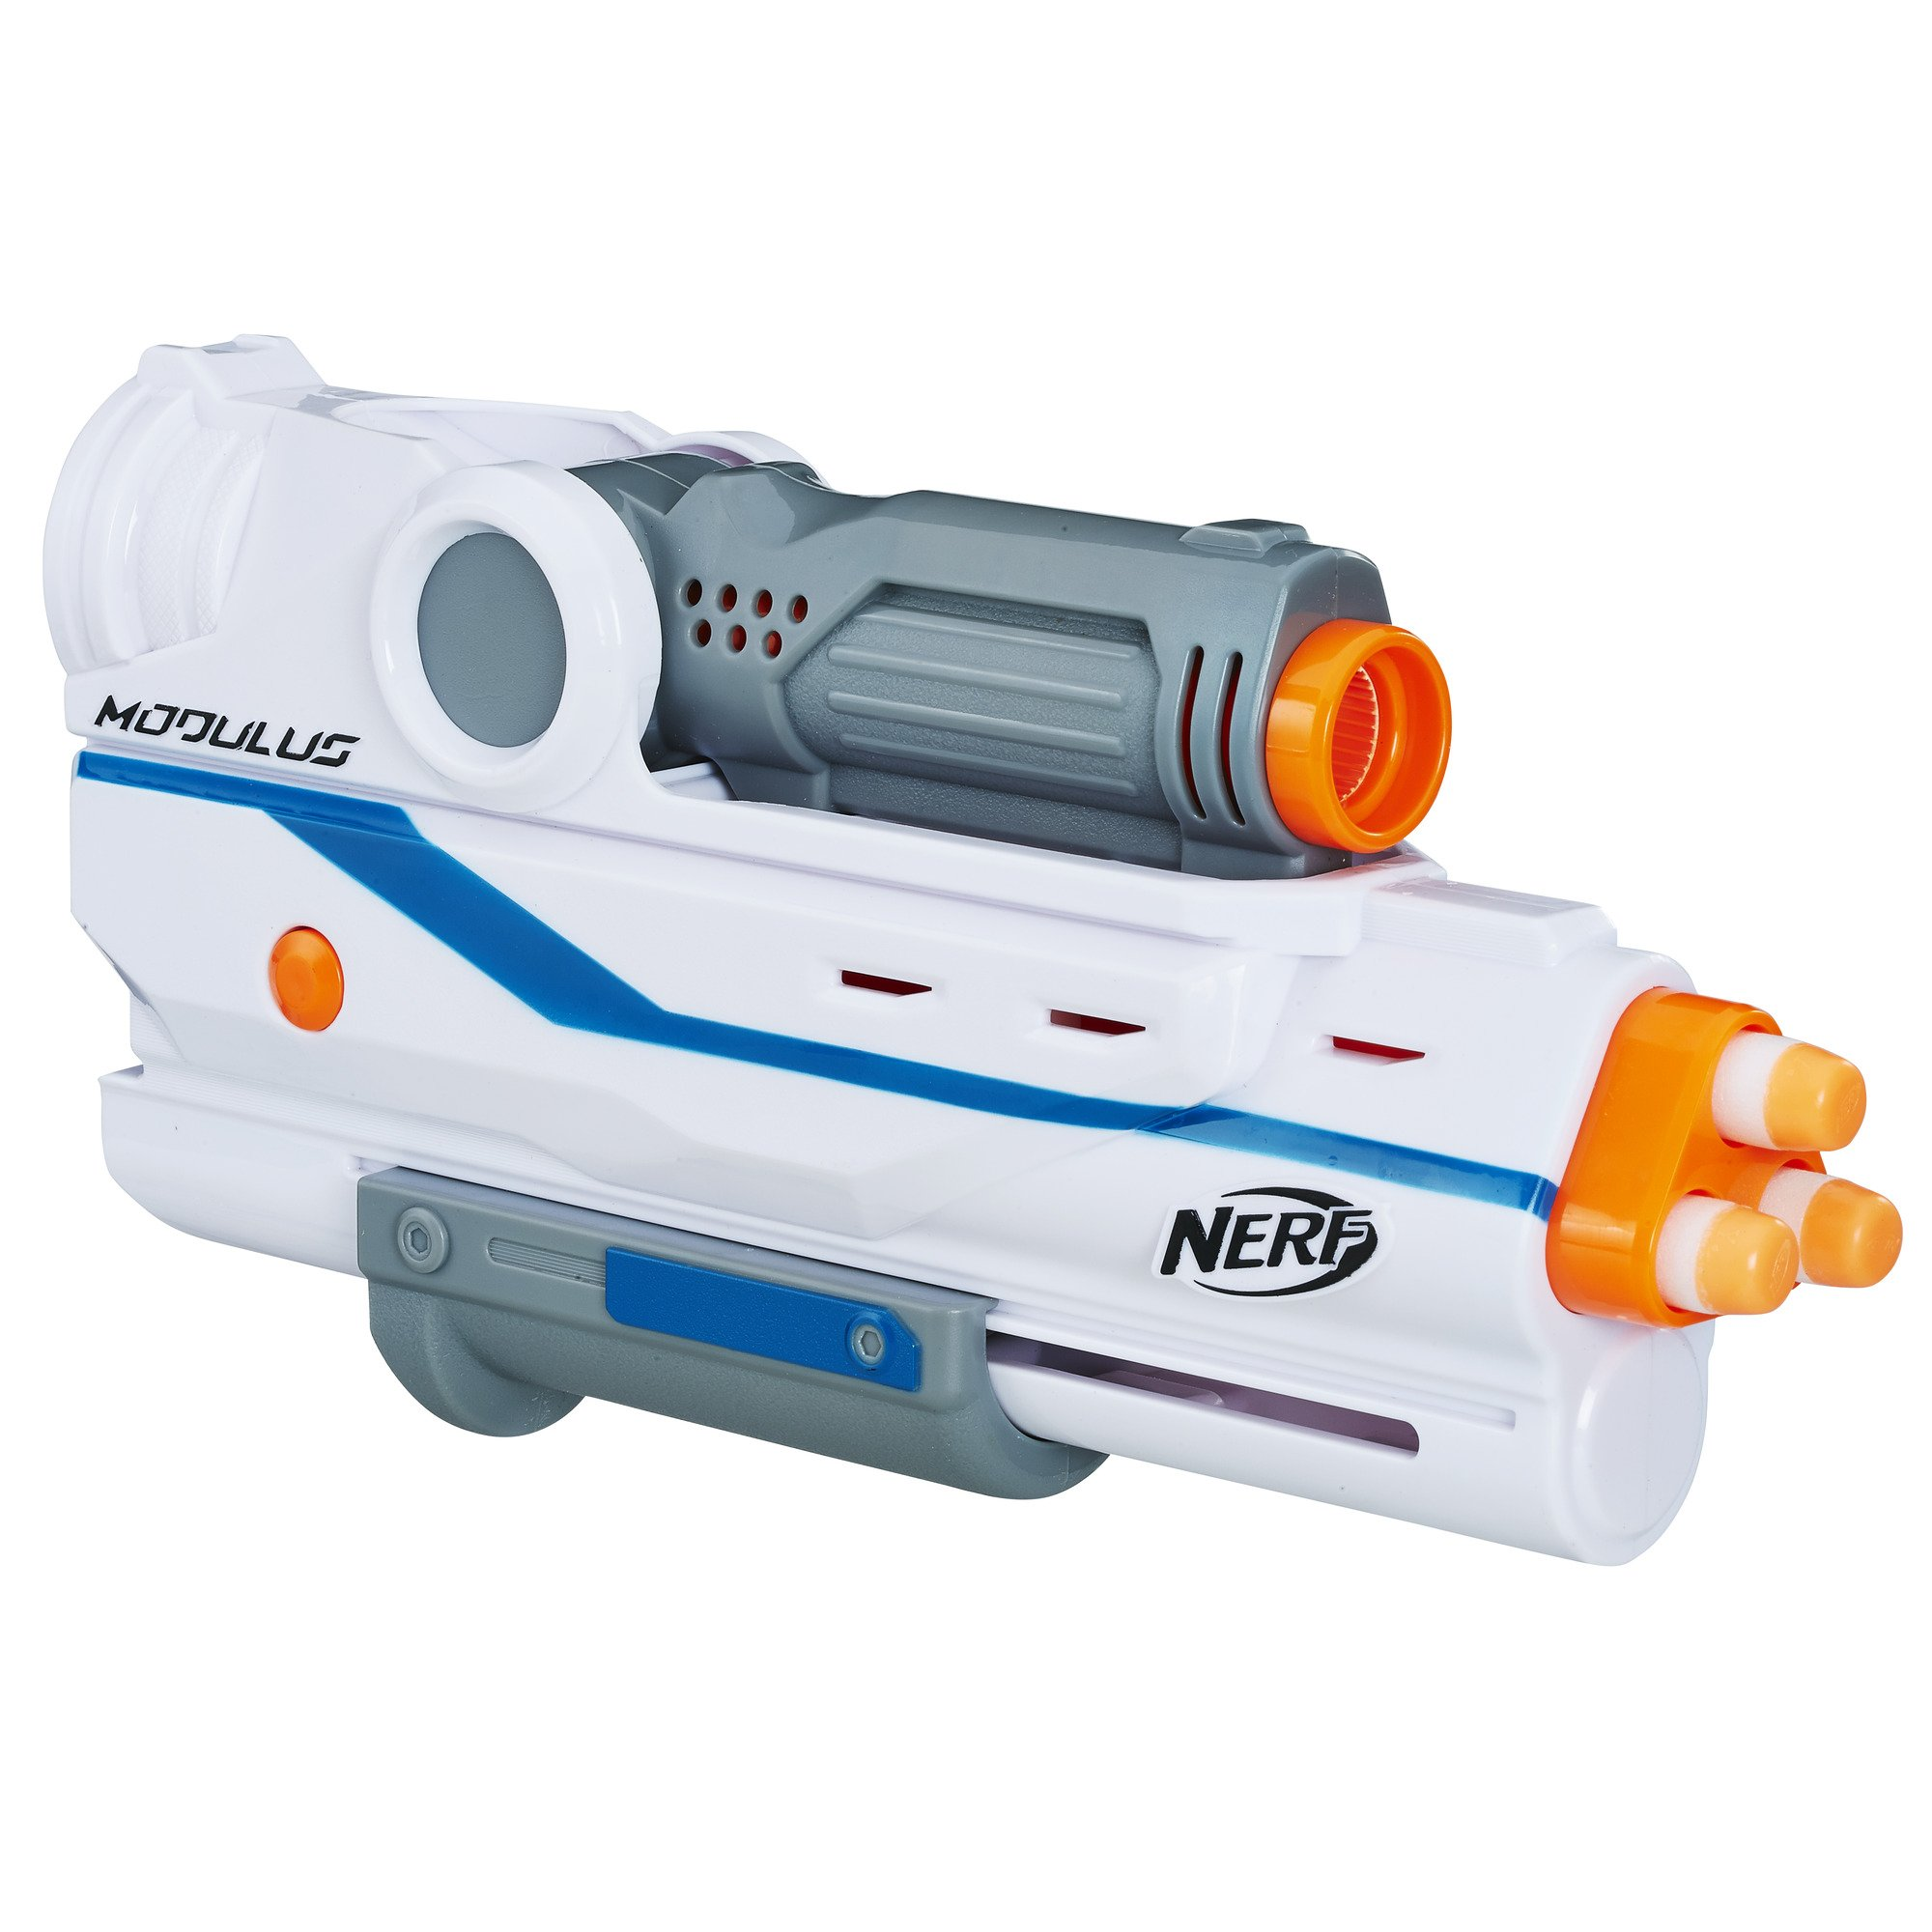 Nerf E0786 Modulus Mediator Barrel